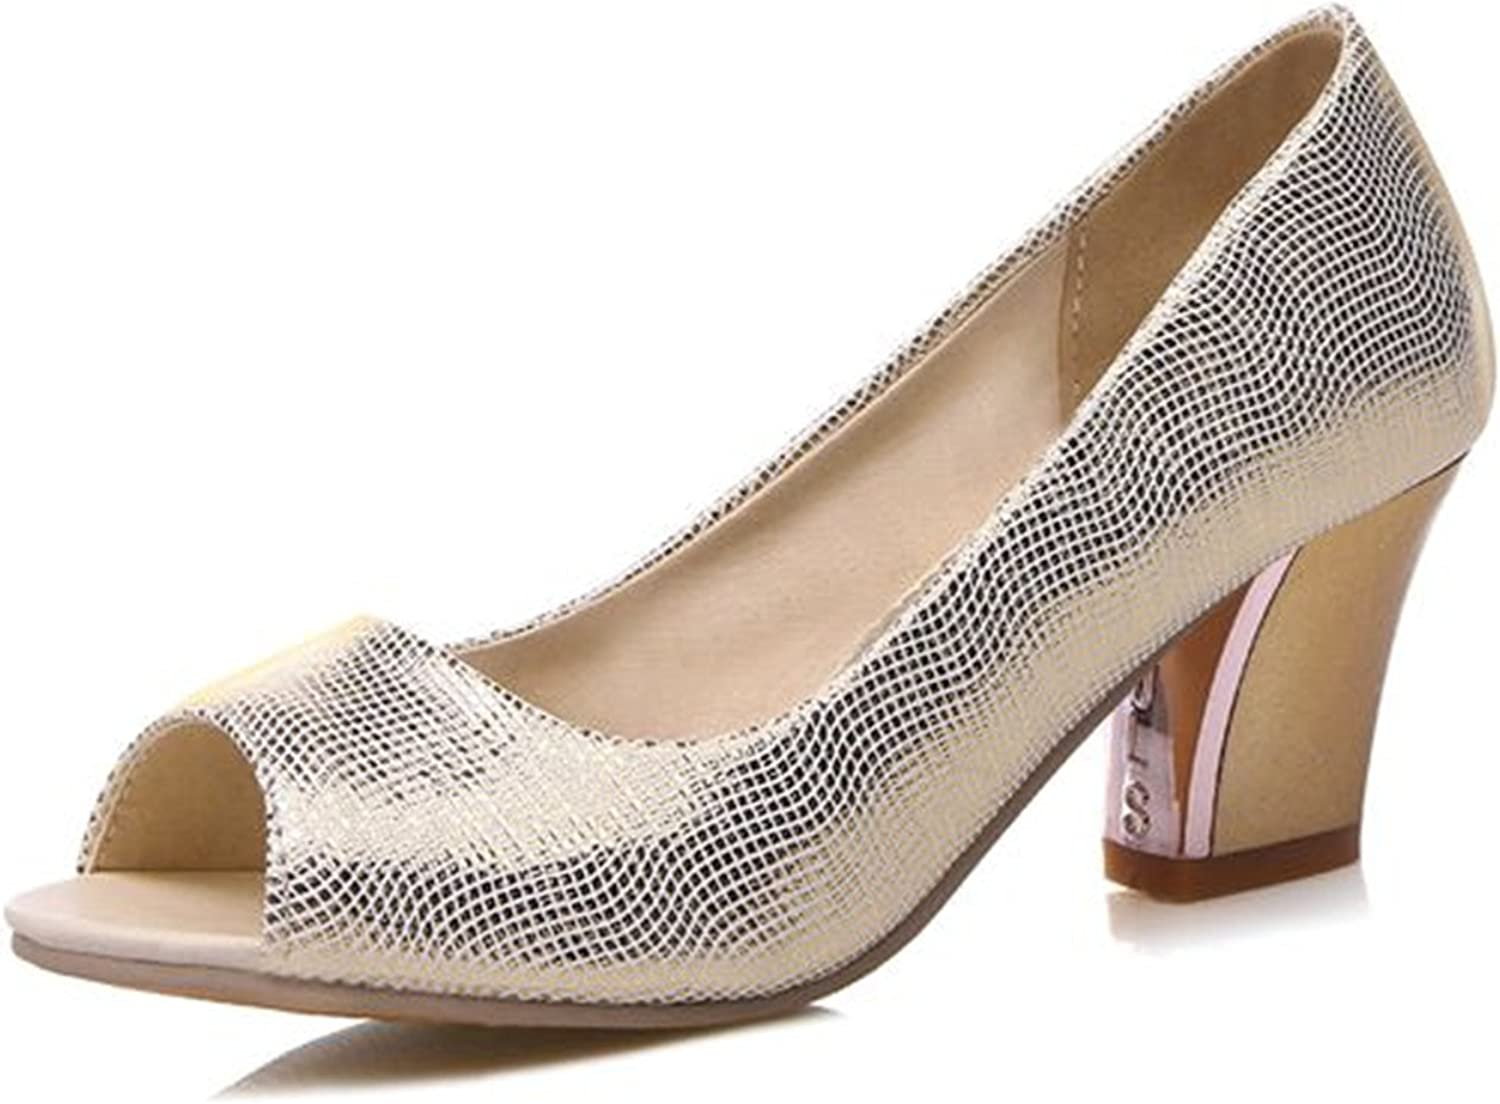 Gome-z Glitter Peep Toe Slip-on Ladies Pumps Mid Heel shoes Women 32-45 Spring Autumn gold Silver Dating Party PL924